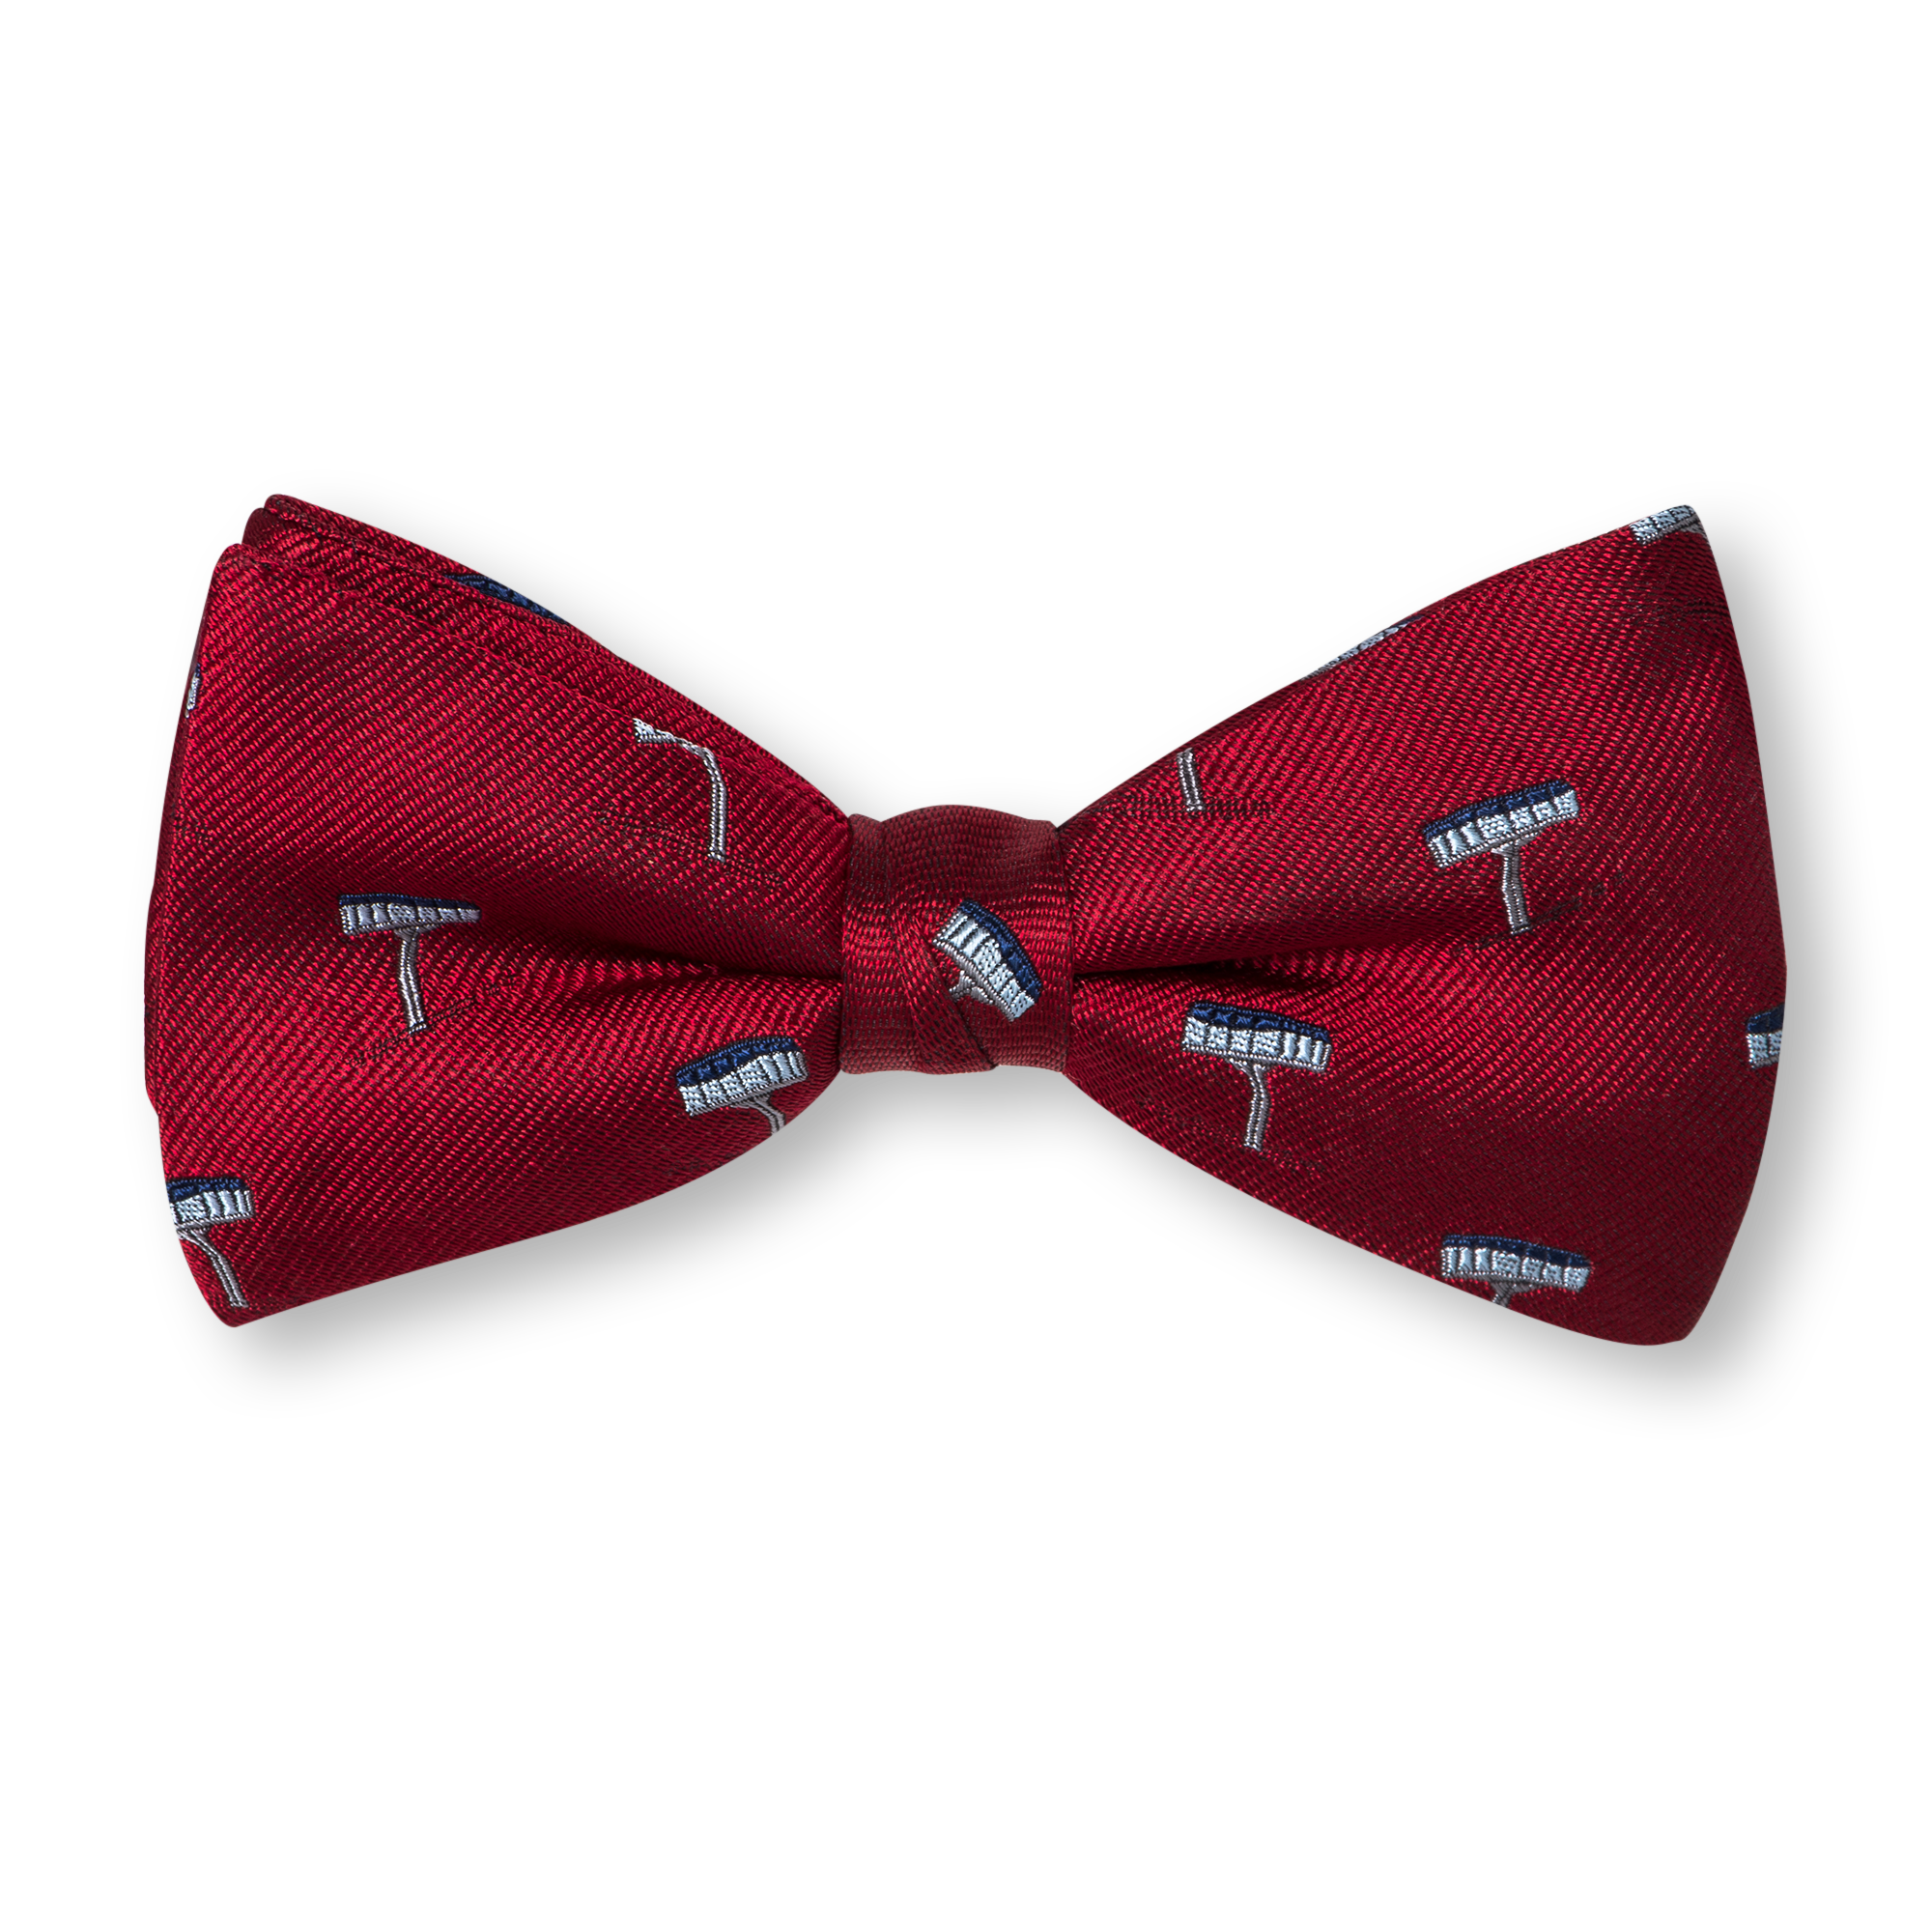 red Bow ties product photography